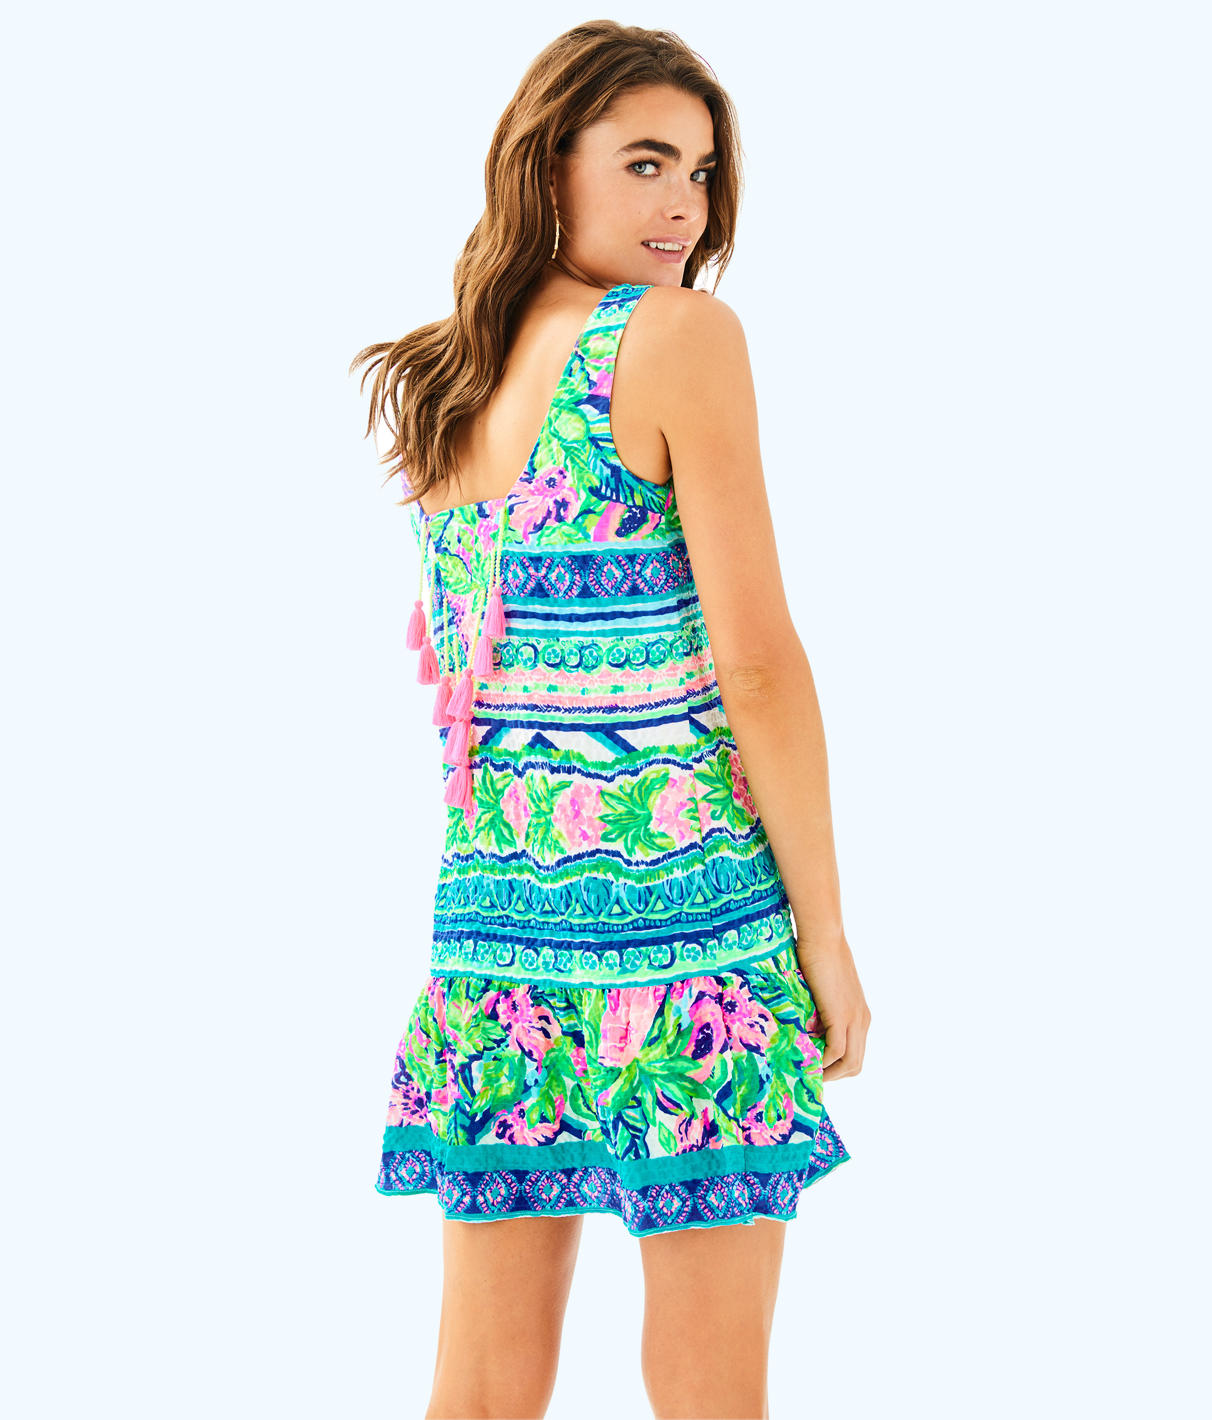 Lilly Pulitzer Lilly Pulitzer Womens Gabriella Dress